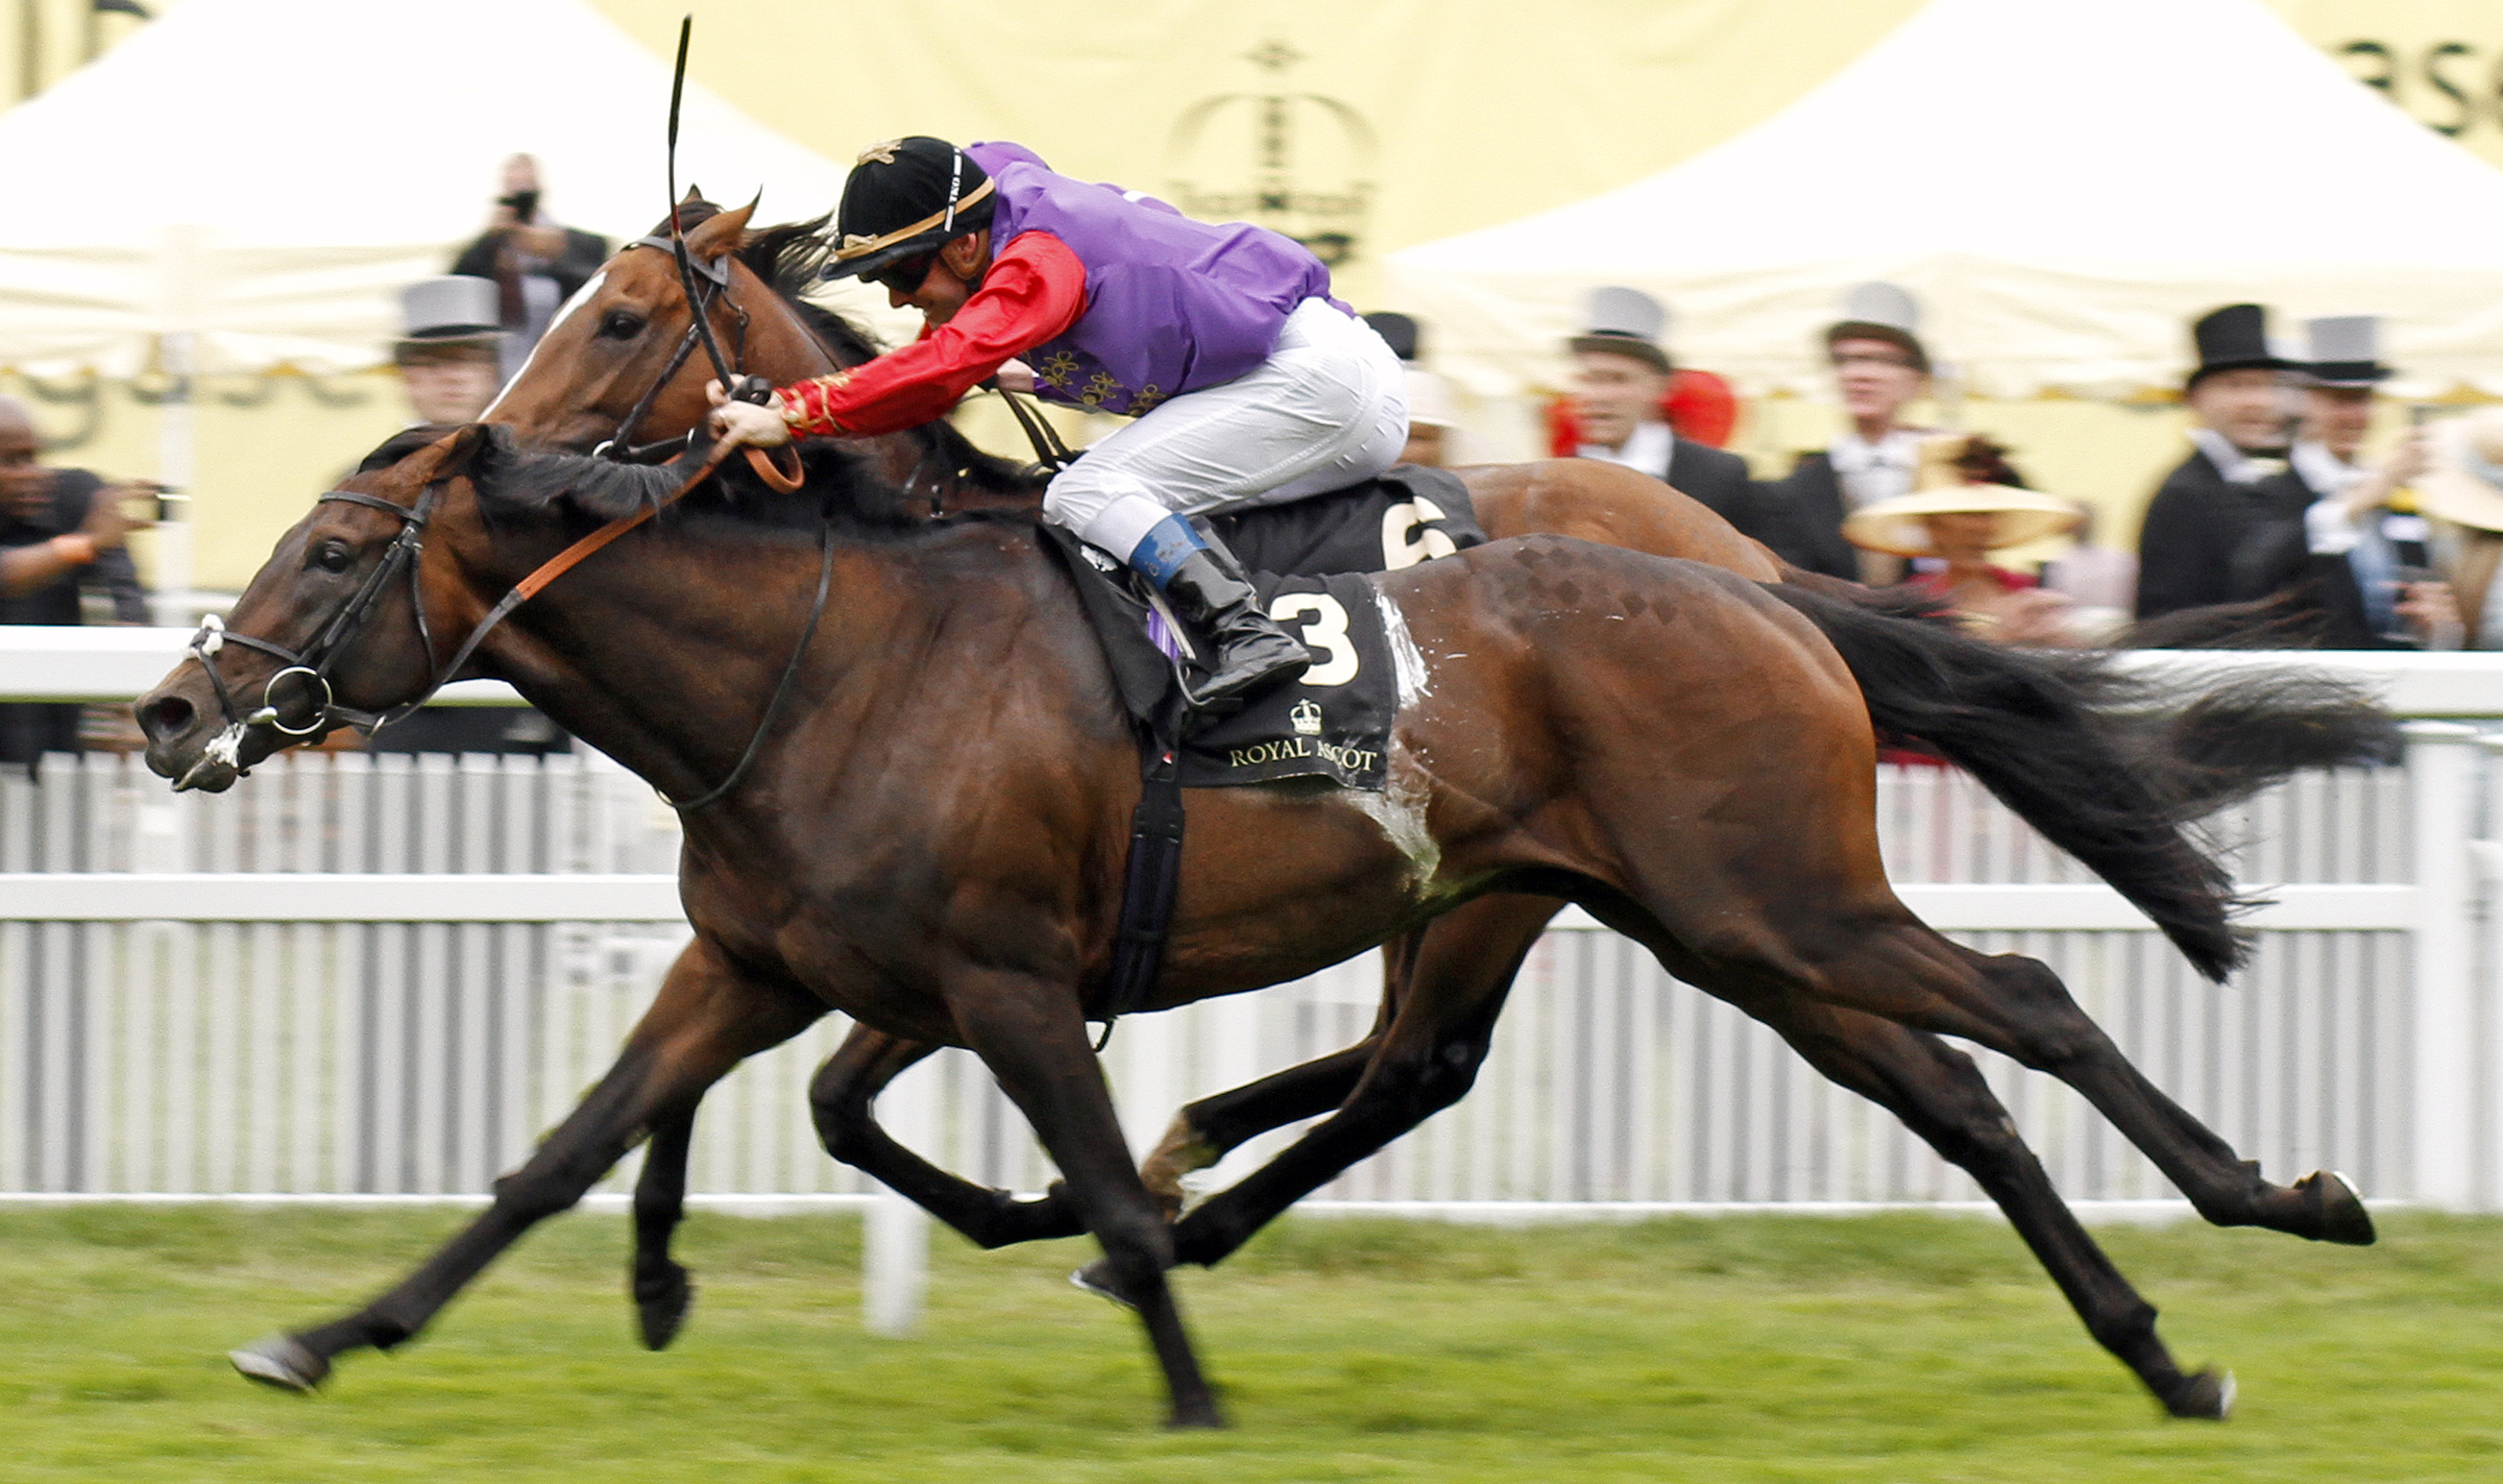 DARTMOUTH (Olivier Peslier) wins The Hardwicke Stakes Royal Ascot 18 Jun 2016 - Pic Steven Cargill / Racingfotos.com